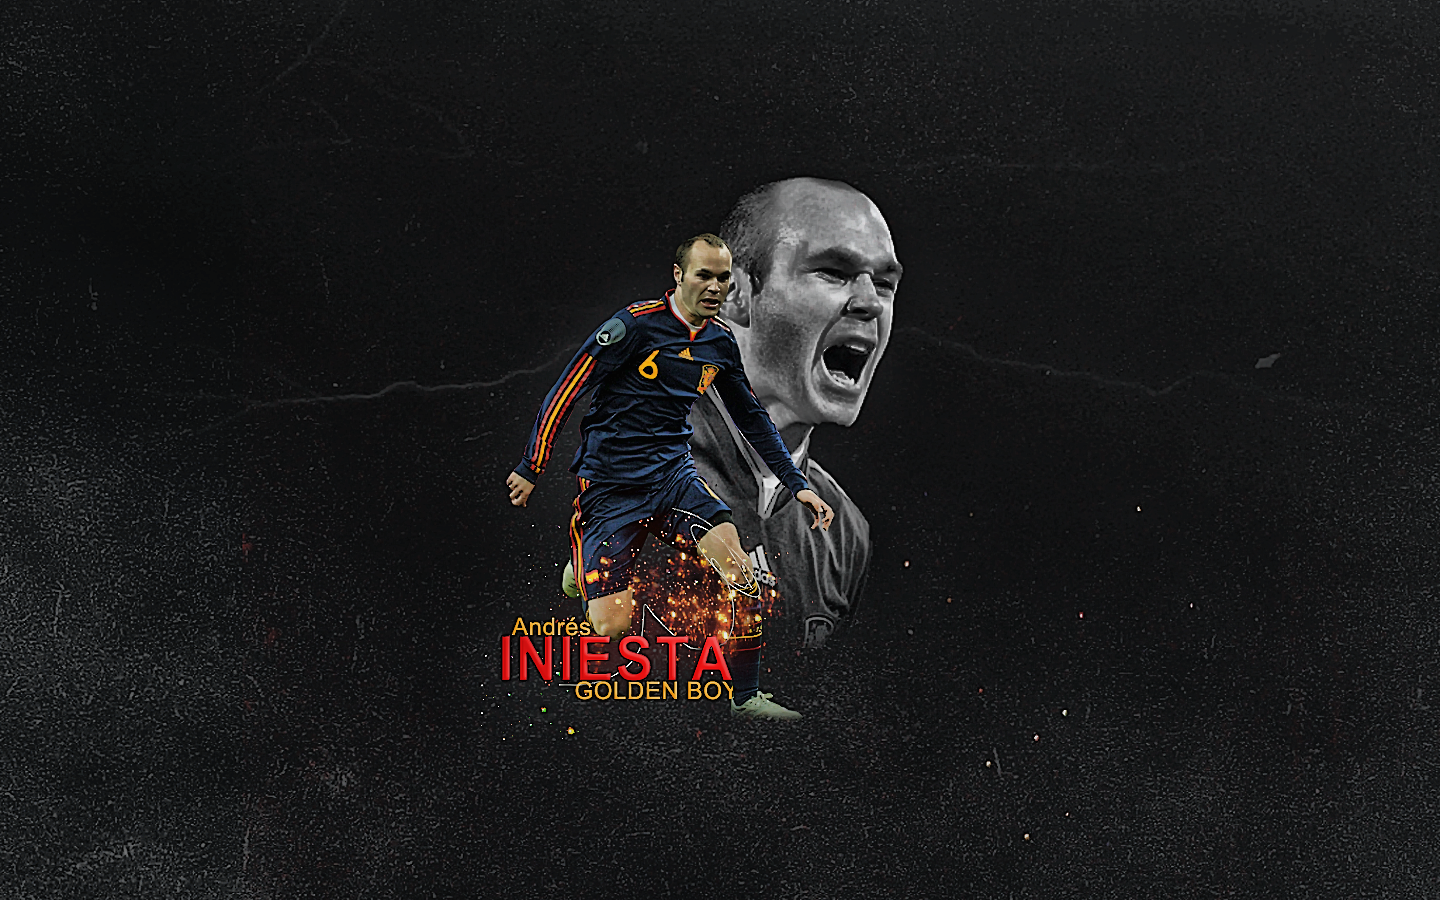 http://4.bp.blogspot.com/-SGtV6_9L8AA/T3X1Dc9rRZI/AAAAAAAAA2o/F04exbS407g/s1600/Andres-Iniesta-Spain-2012-pictures.png